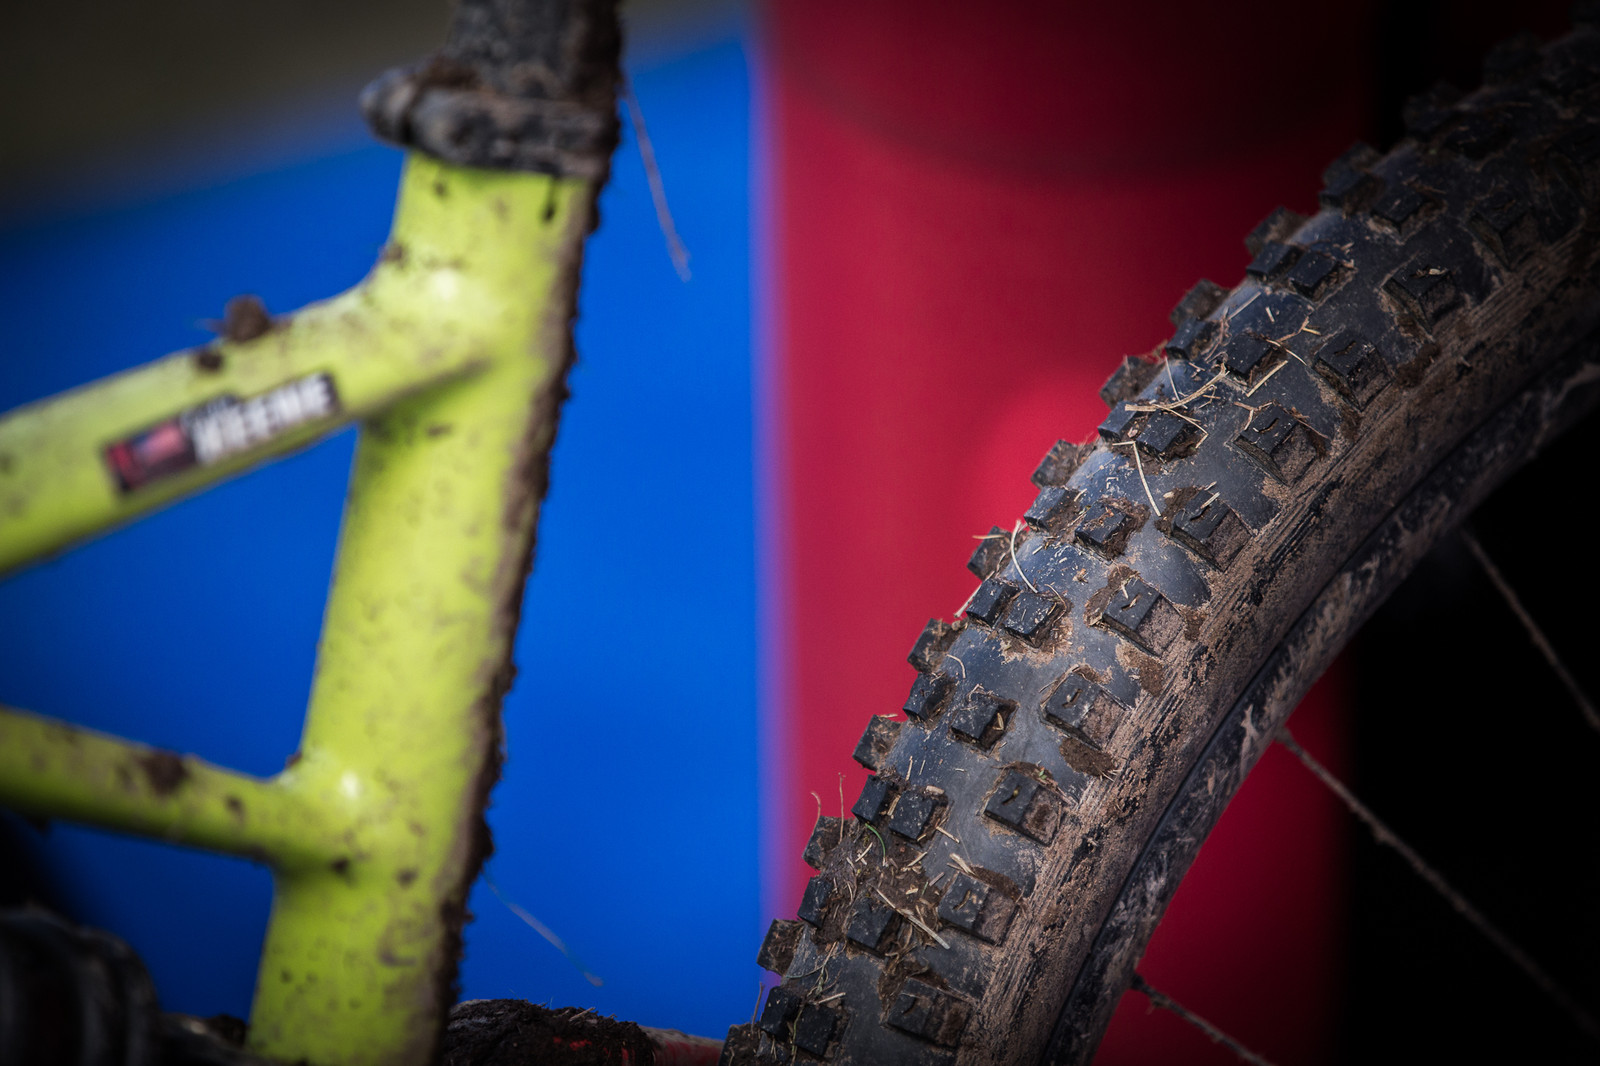 New Specialized Mud Tires - PIT BITS - Enduro World Series, Valberg - Mountain Biking Pictures - Vital MTB